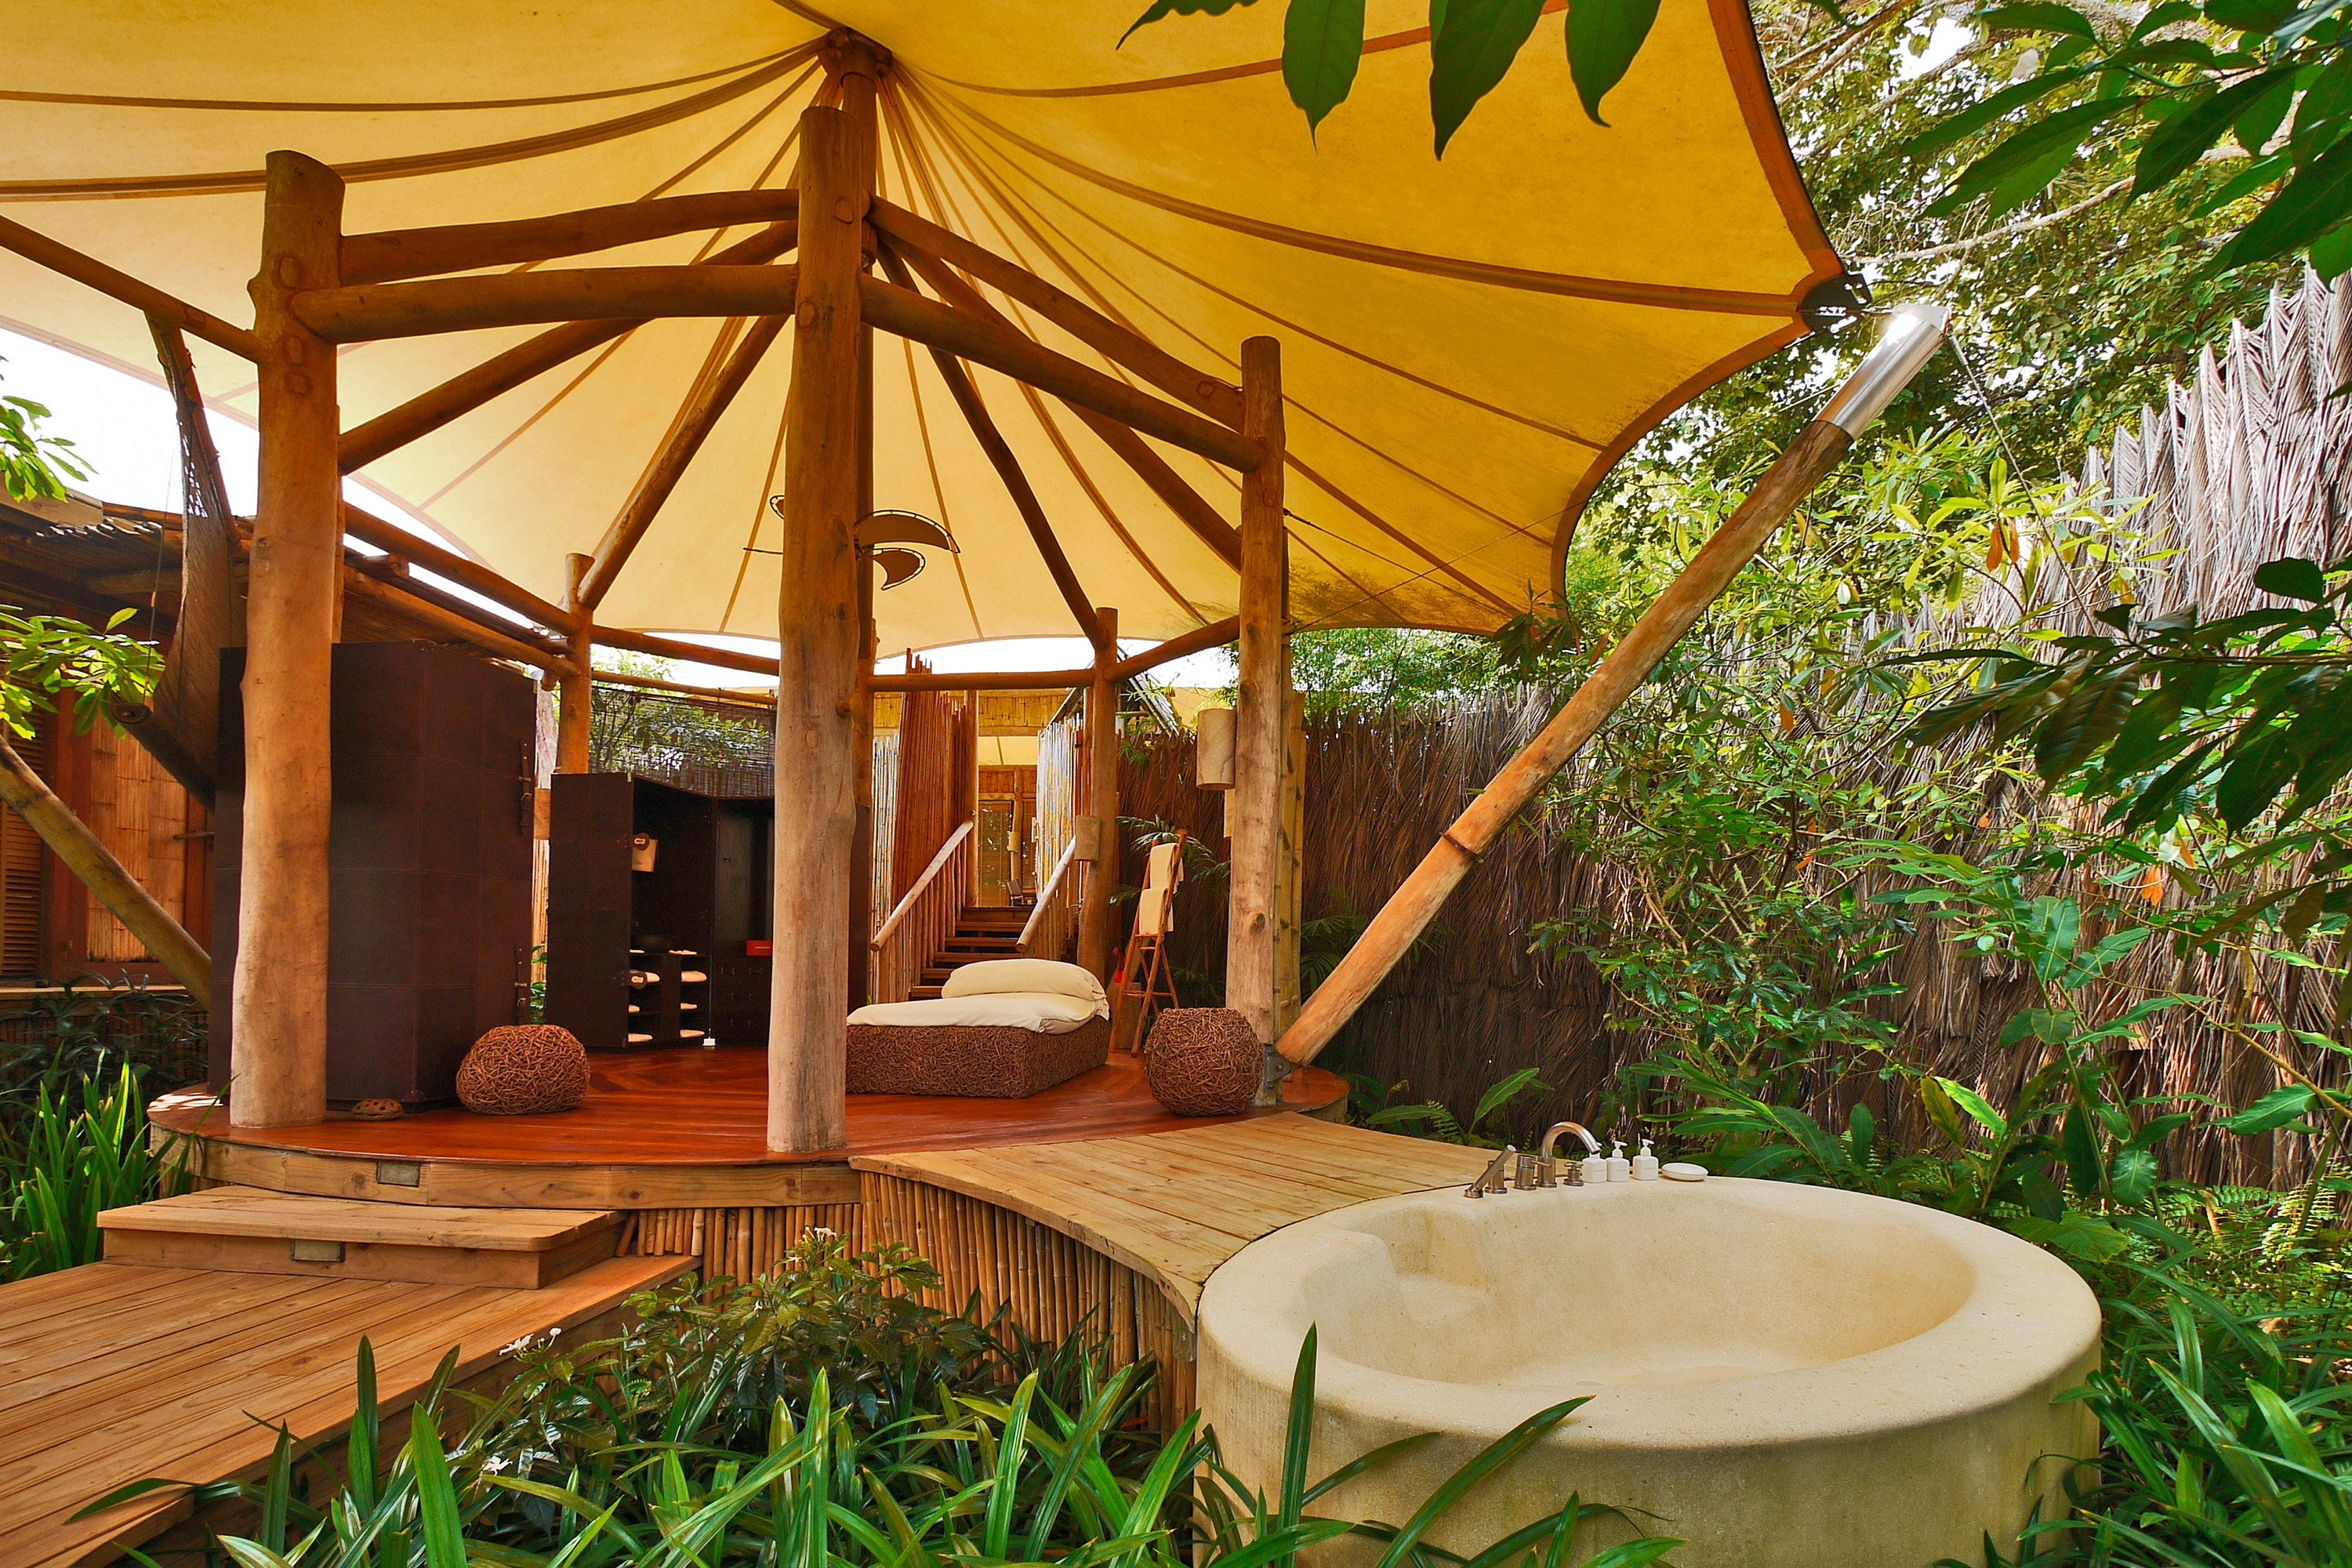 Unplug and unwind in one of Soneva Kiri's pavilion-style bathrooms.